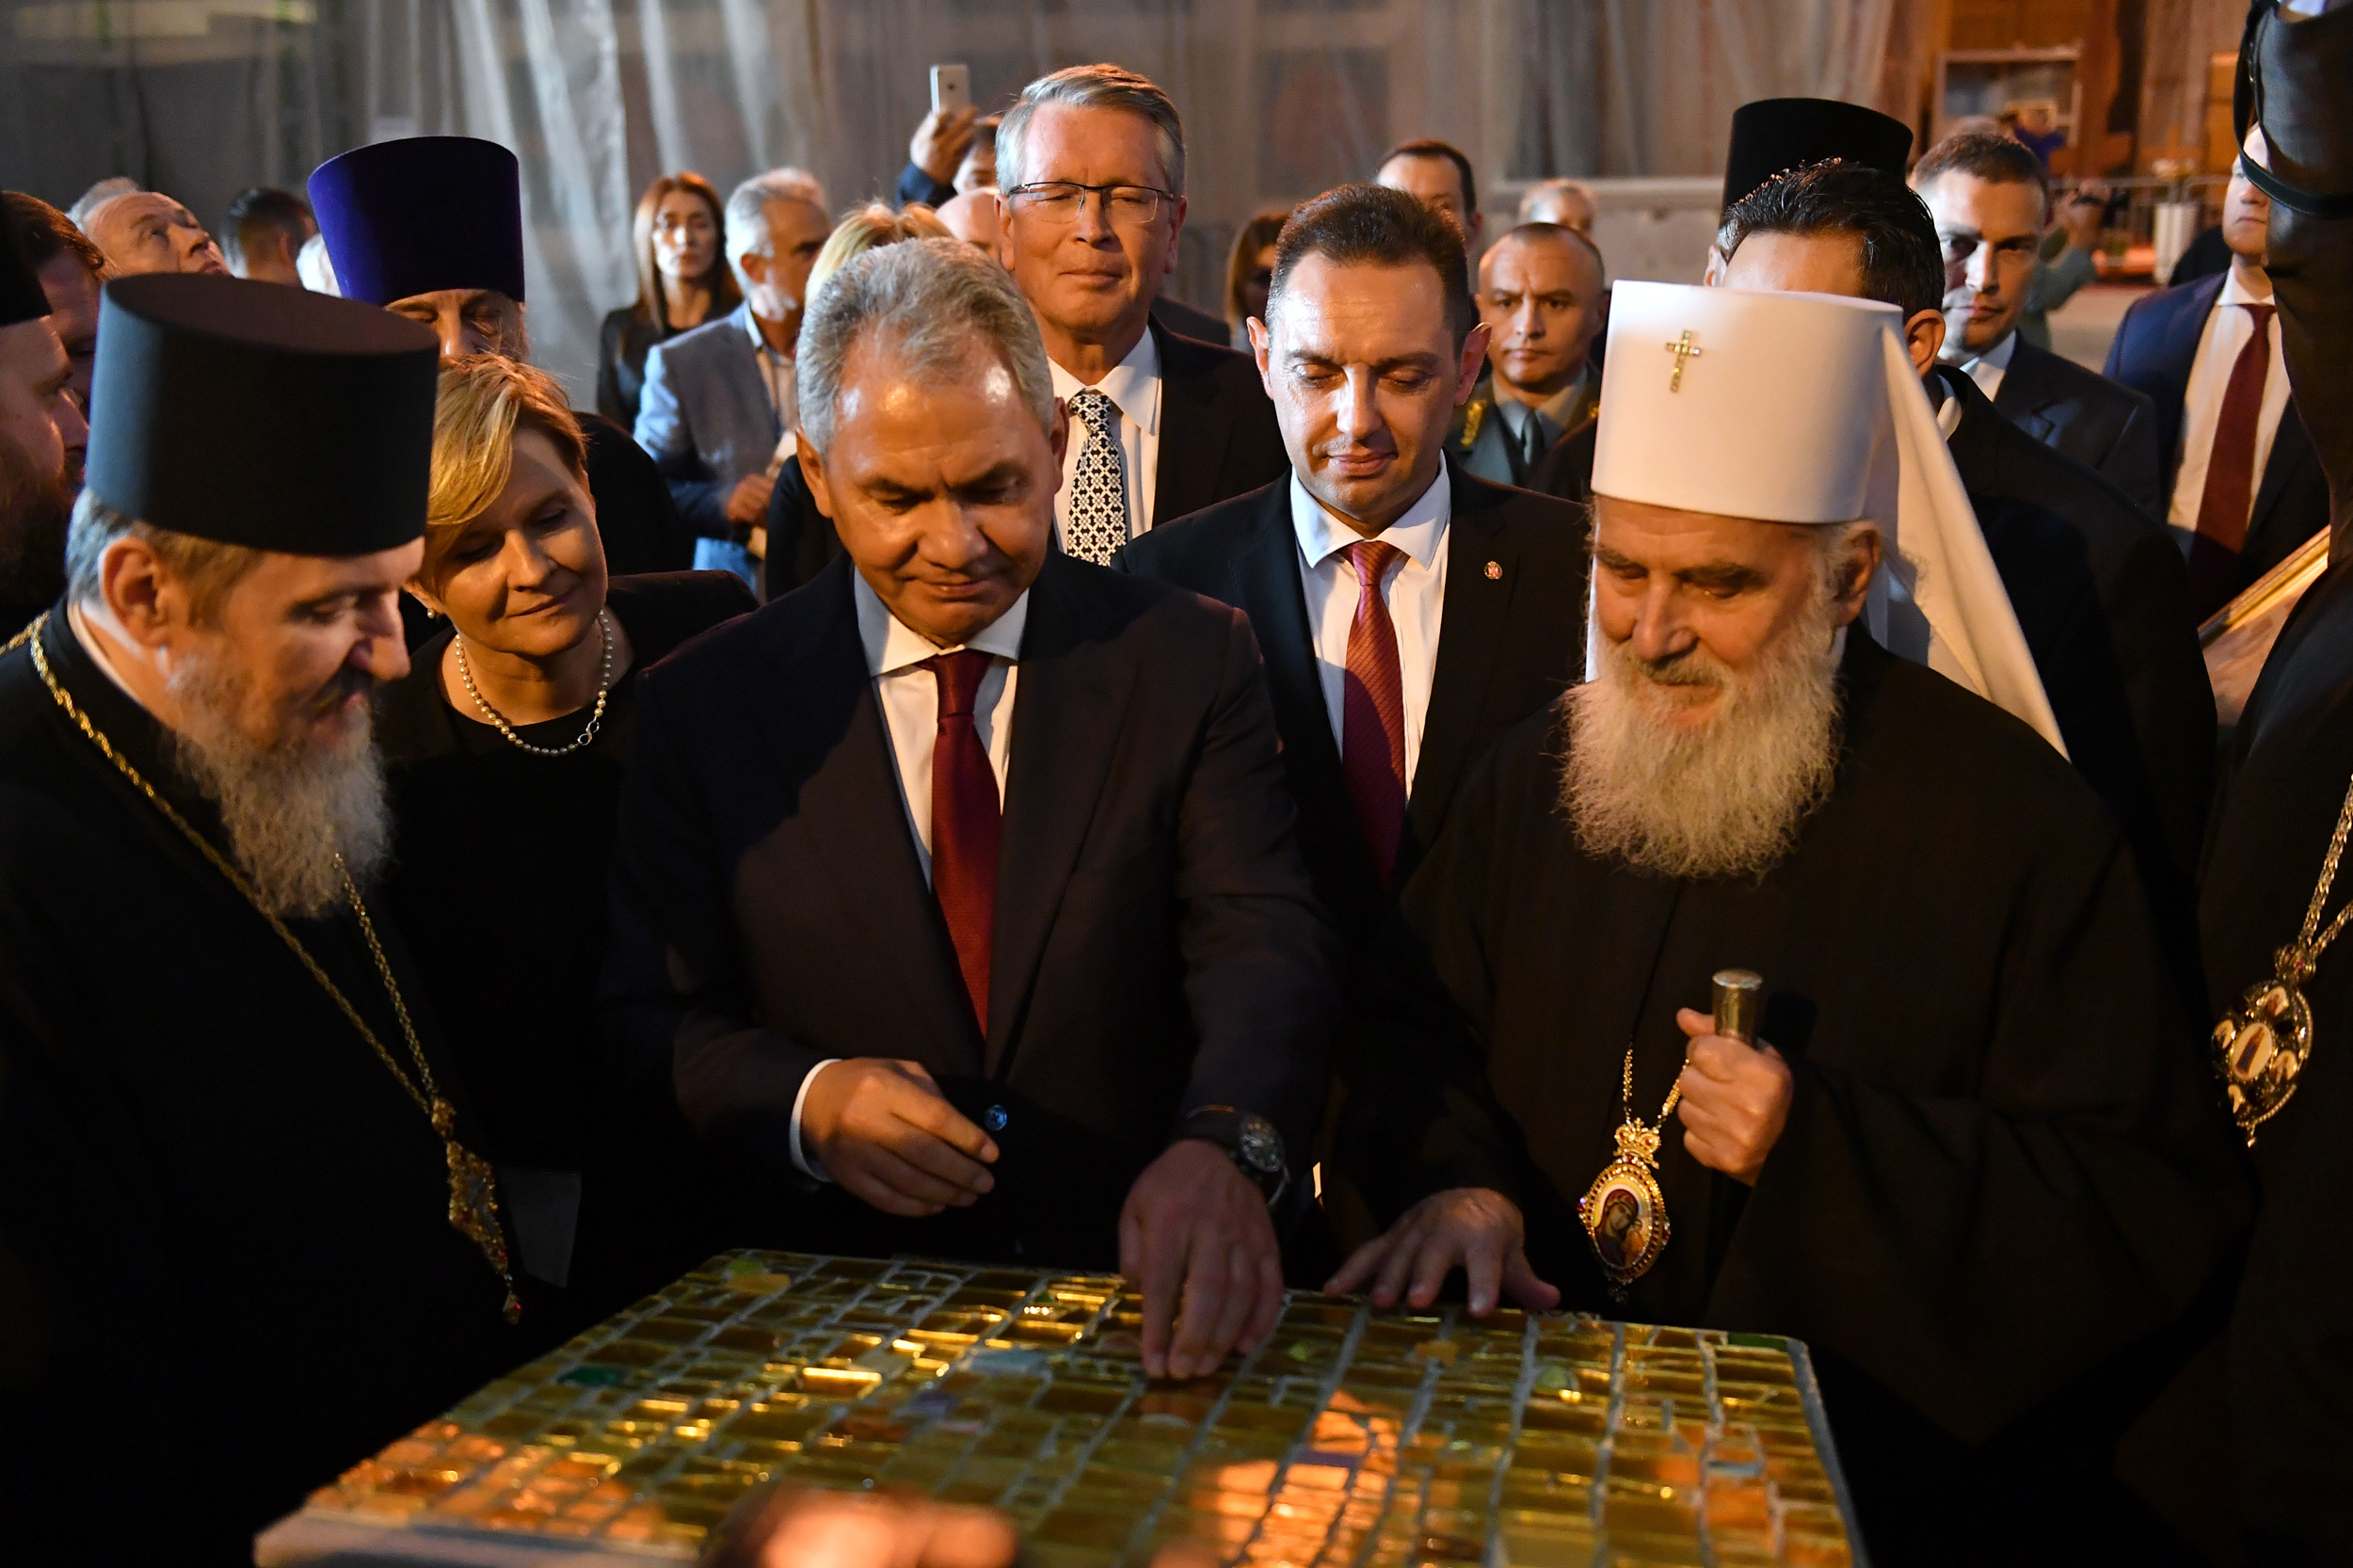 Ministers vulin and shoigu visit church of saint sava ministry of ministers vulin and shoigu visit church of saint sava m4hsunfo